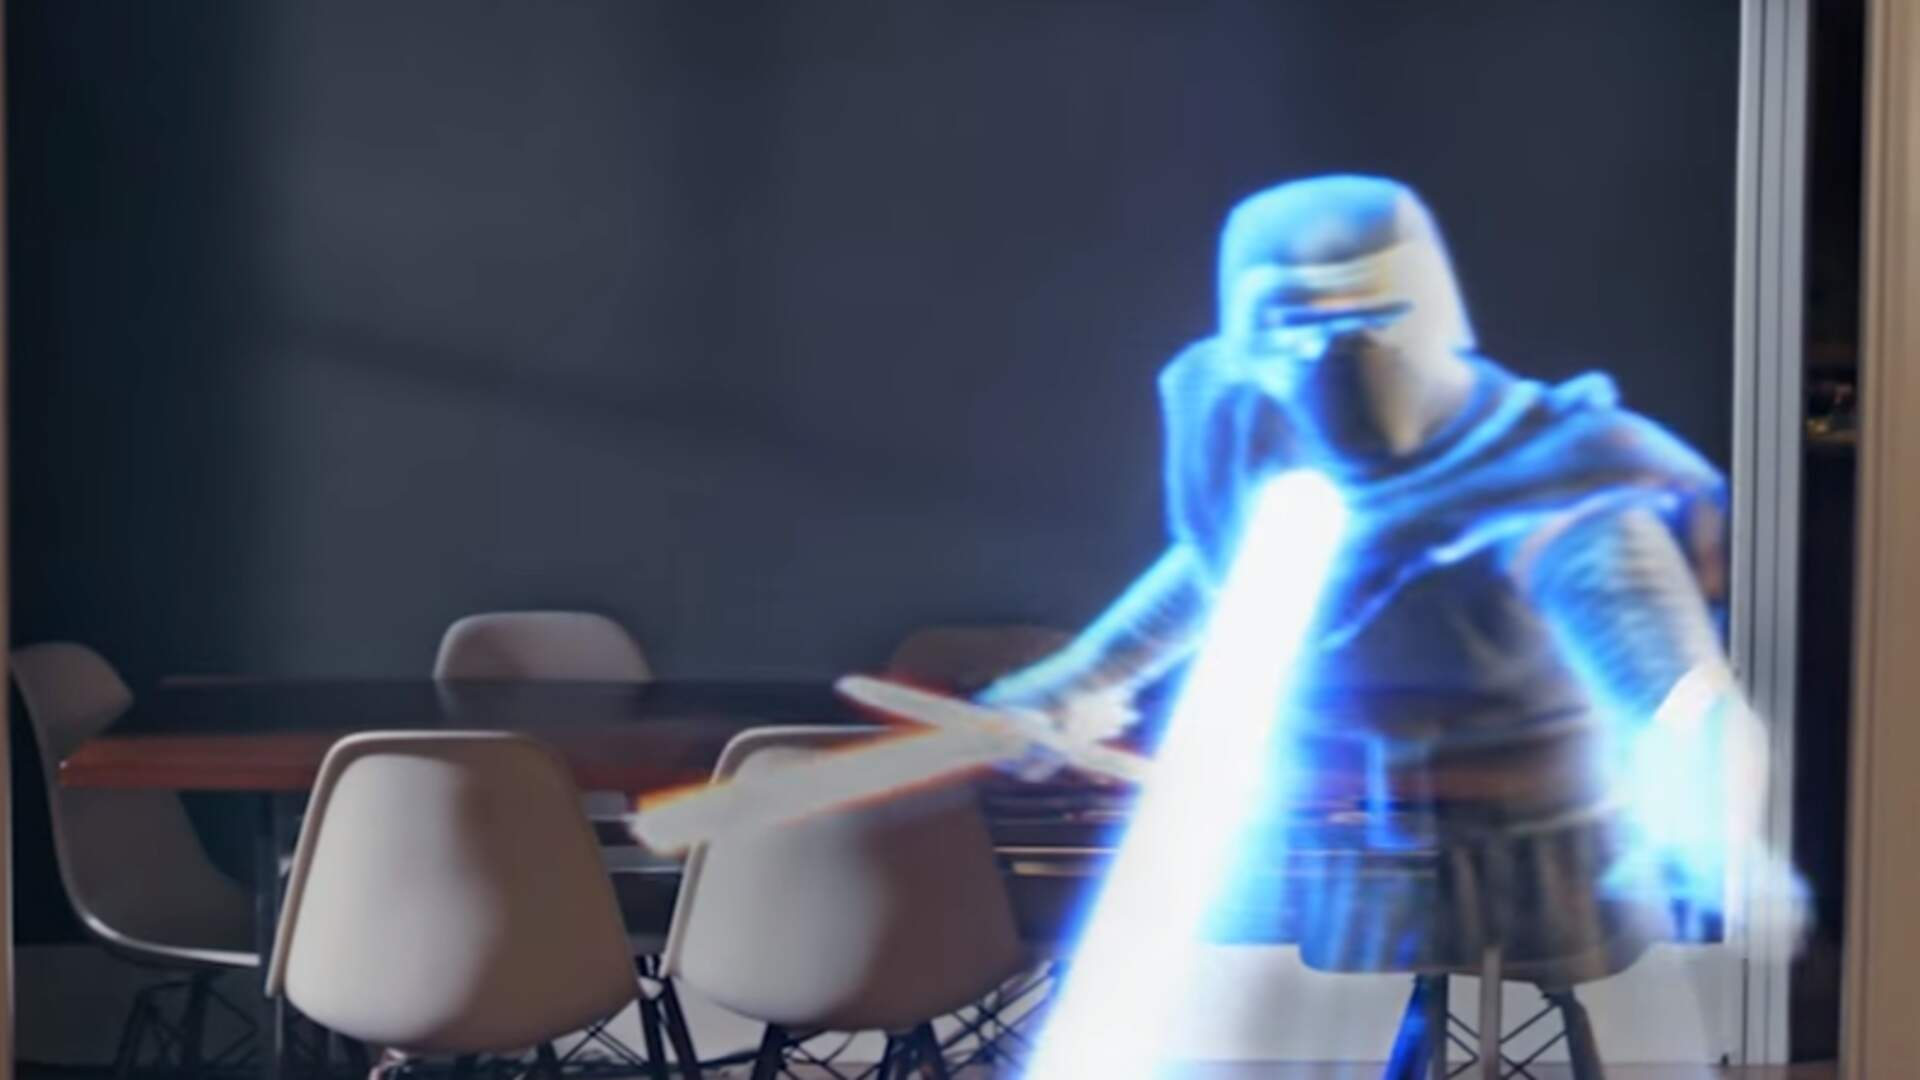 You Can Now Pre-Order the Star Wars AR Lightsaber Game